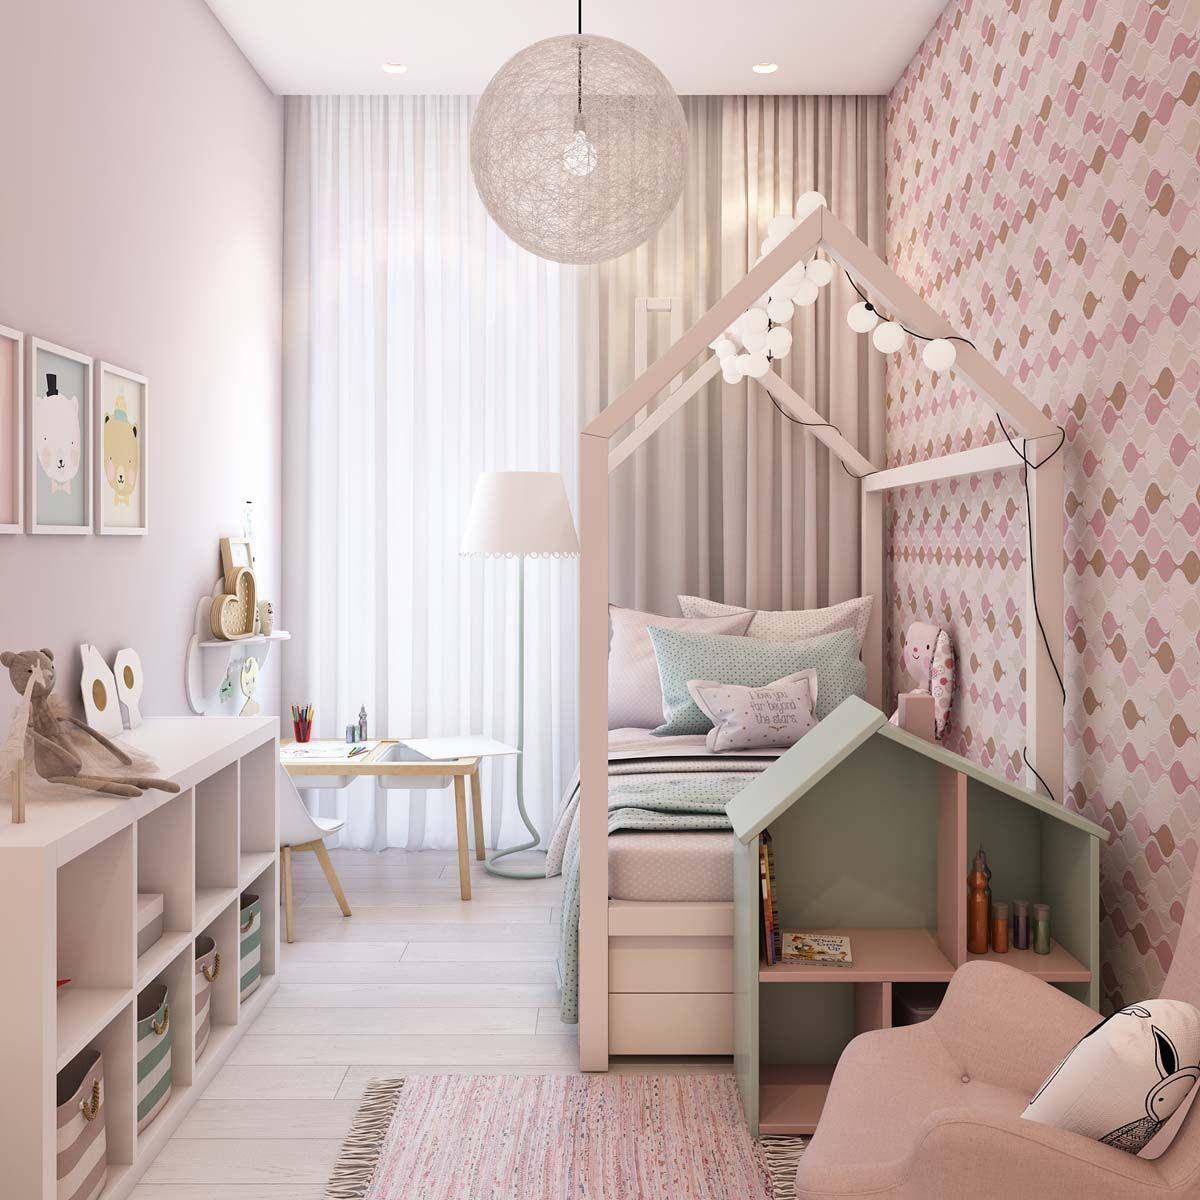 45 Master Bedroom Design Ideas That Range From The Modern: Designing A Kids' Bedroom And Then Decorating It Aptly Is